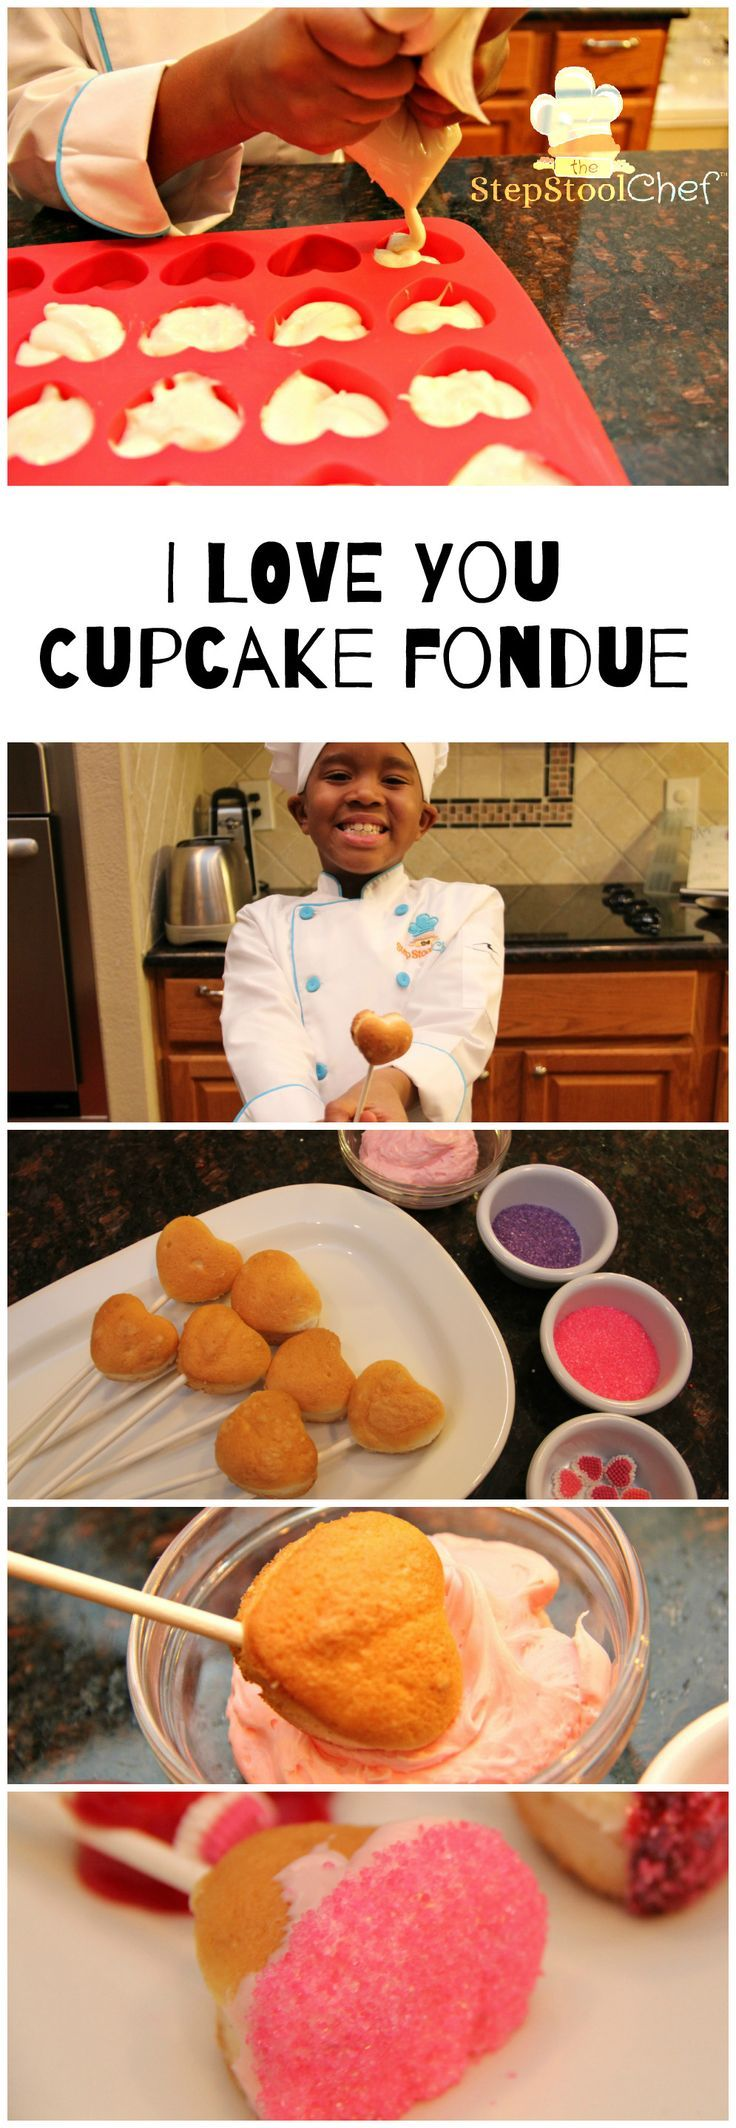 """You're going to fall in love with this adorable #Valentine treat. We call it """"I Love You"""" Cupcake Fondue. It's super easy and fun to do. Would make a great classroom treat. What a way to spend time with your little valentine. #happyvalentinesday #valentinetreat #kidsinthekitchen #nohelpneeded #maybejustalittle #ontheblog: http://www.stepstoolchef.com/i-love-you-cupcake-fondue/"""